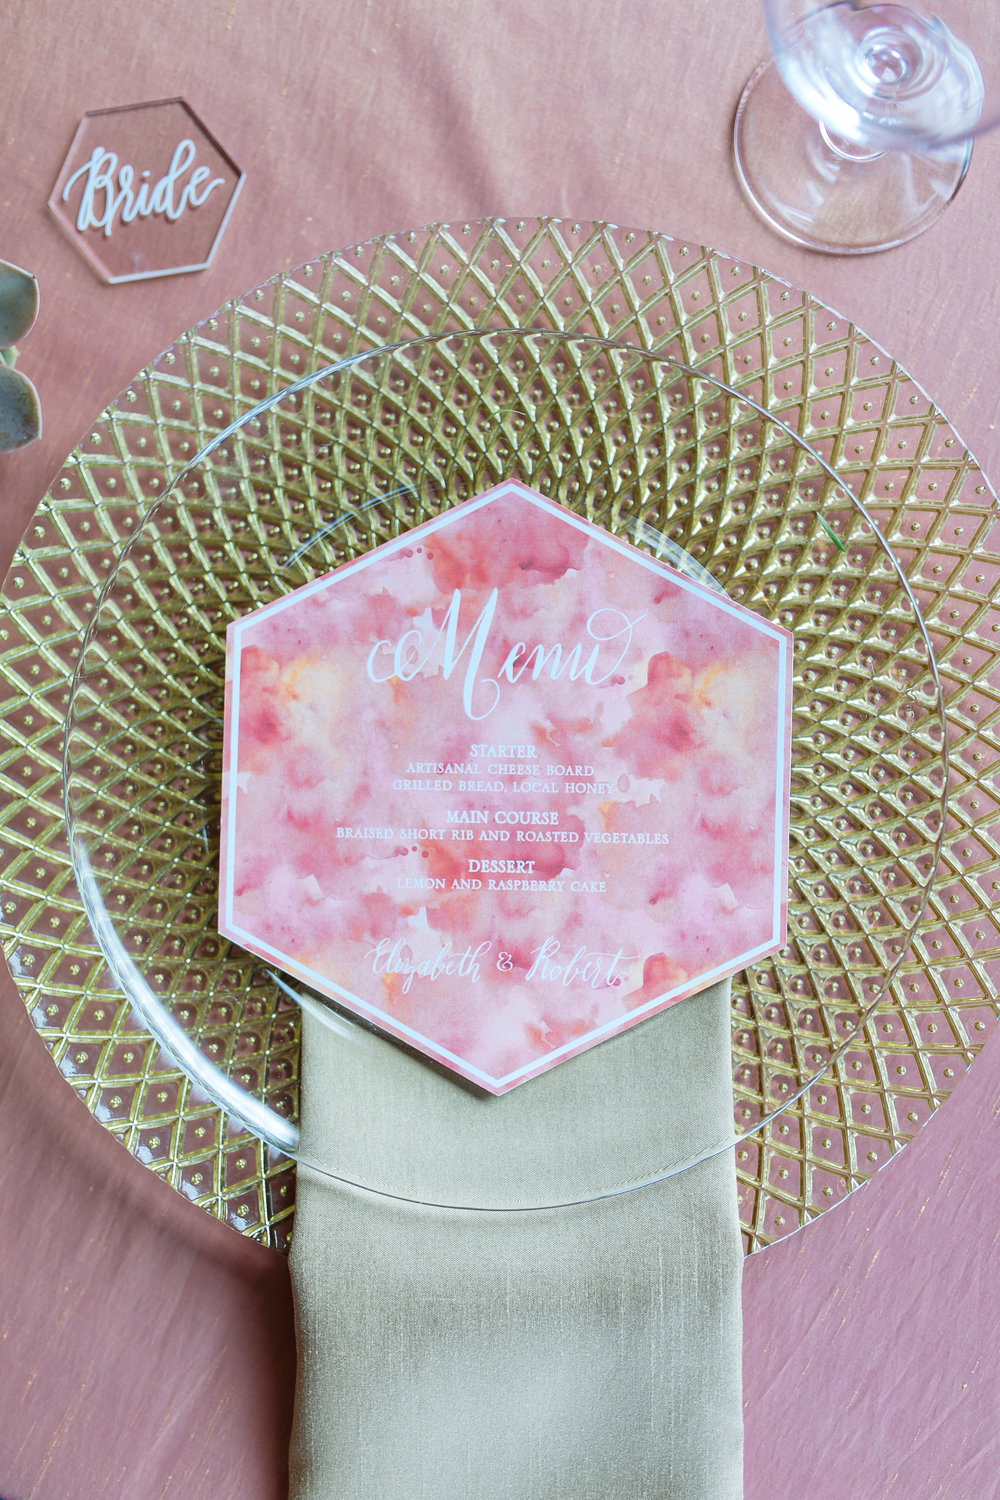 hexagon menu and place setting.jpg